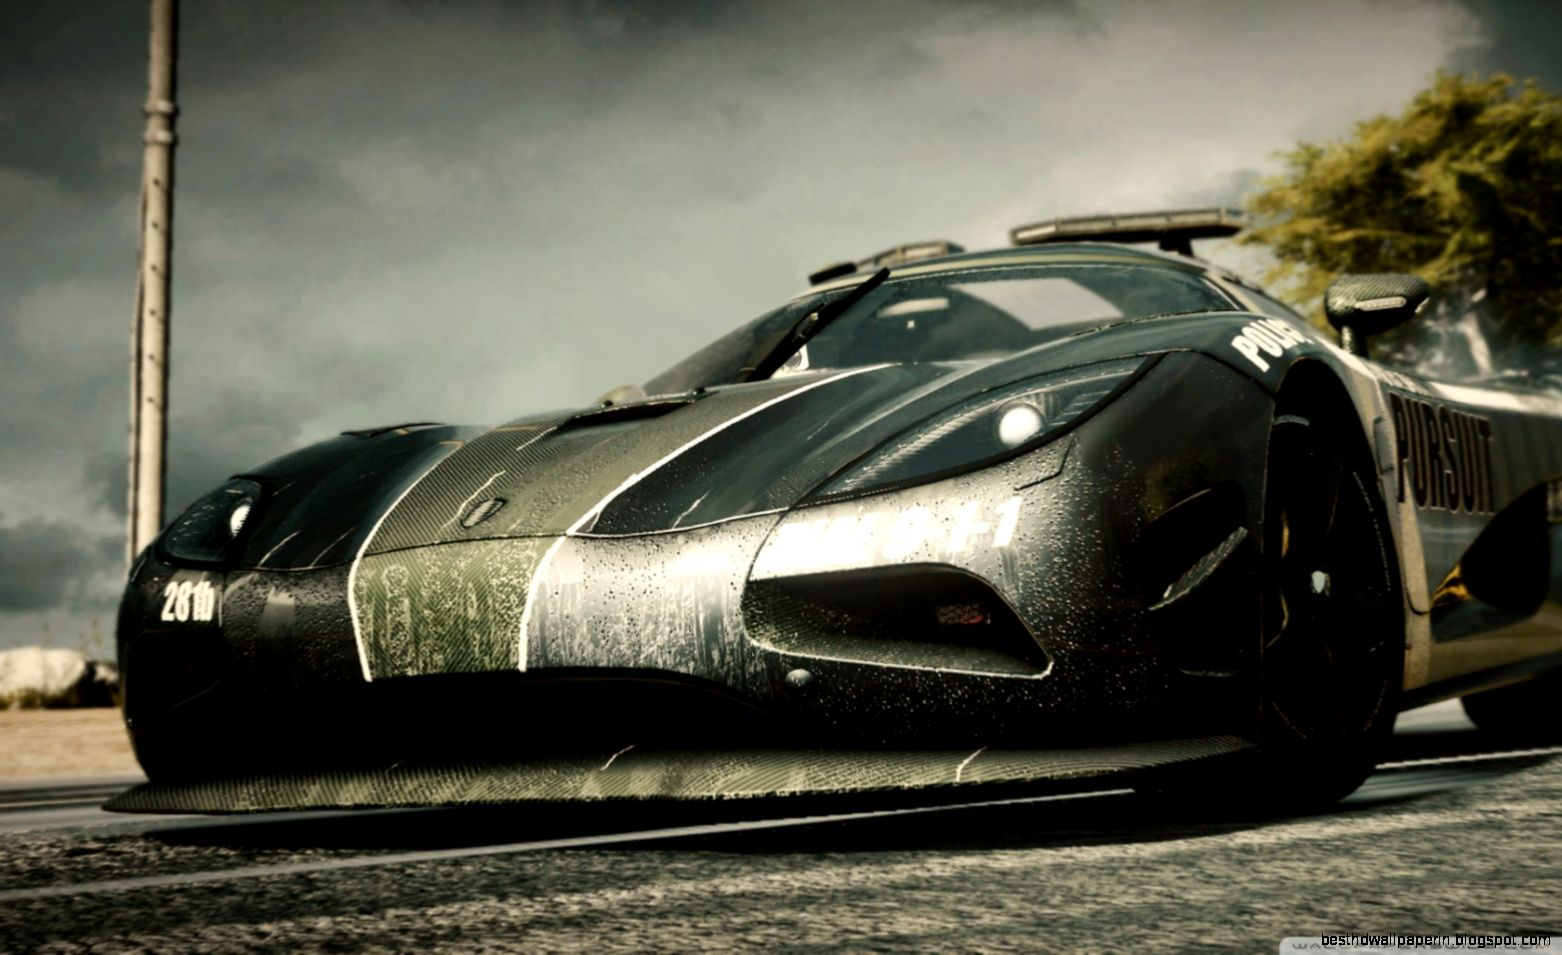 Need for speed rivals wallpaper 1080p best hd wallpapers - Speed wallpaper ...